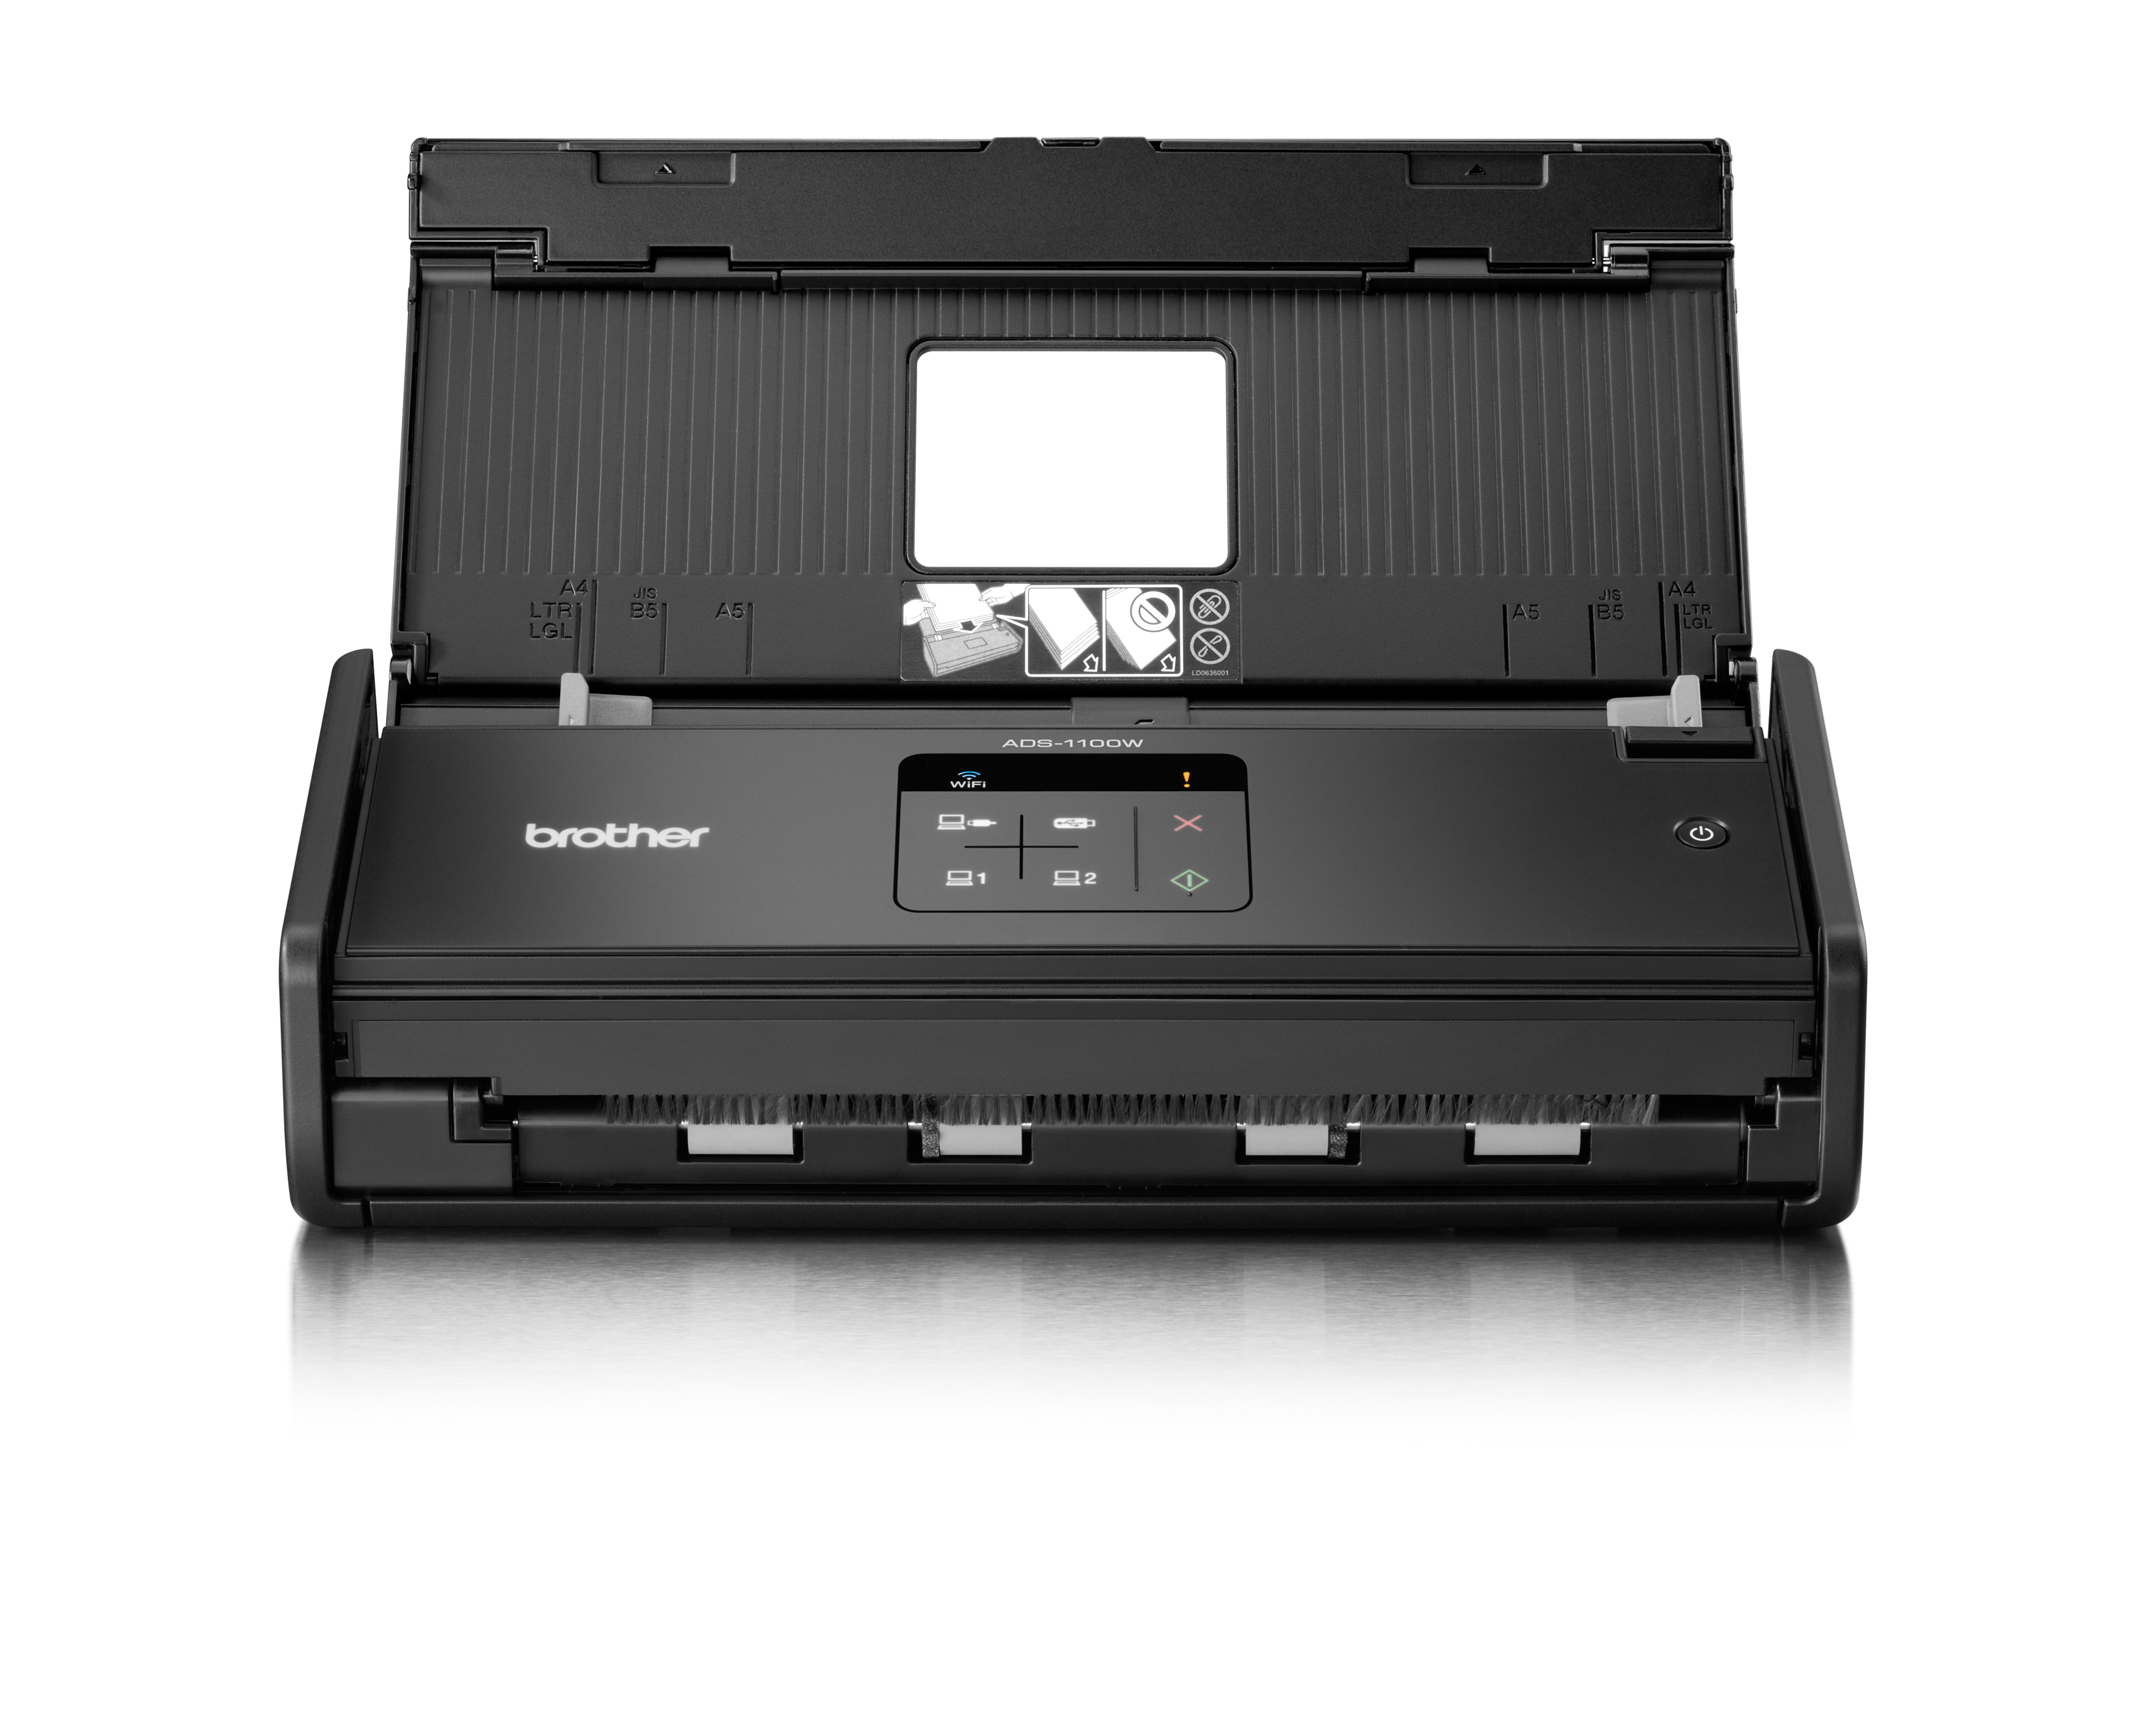 BROTHER ADS-1100W PRINTER WINDOWS 7 DRIVERS DOWNLOAD